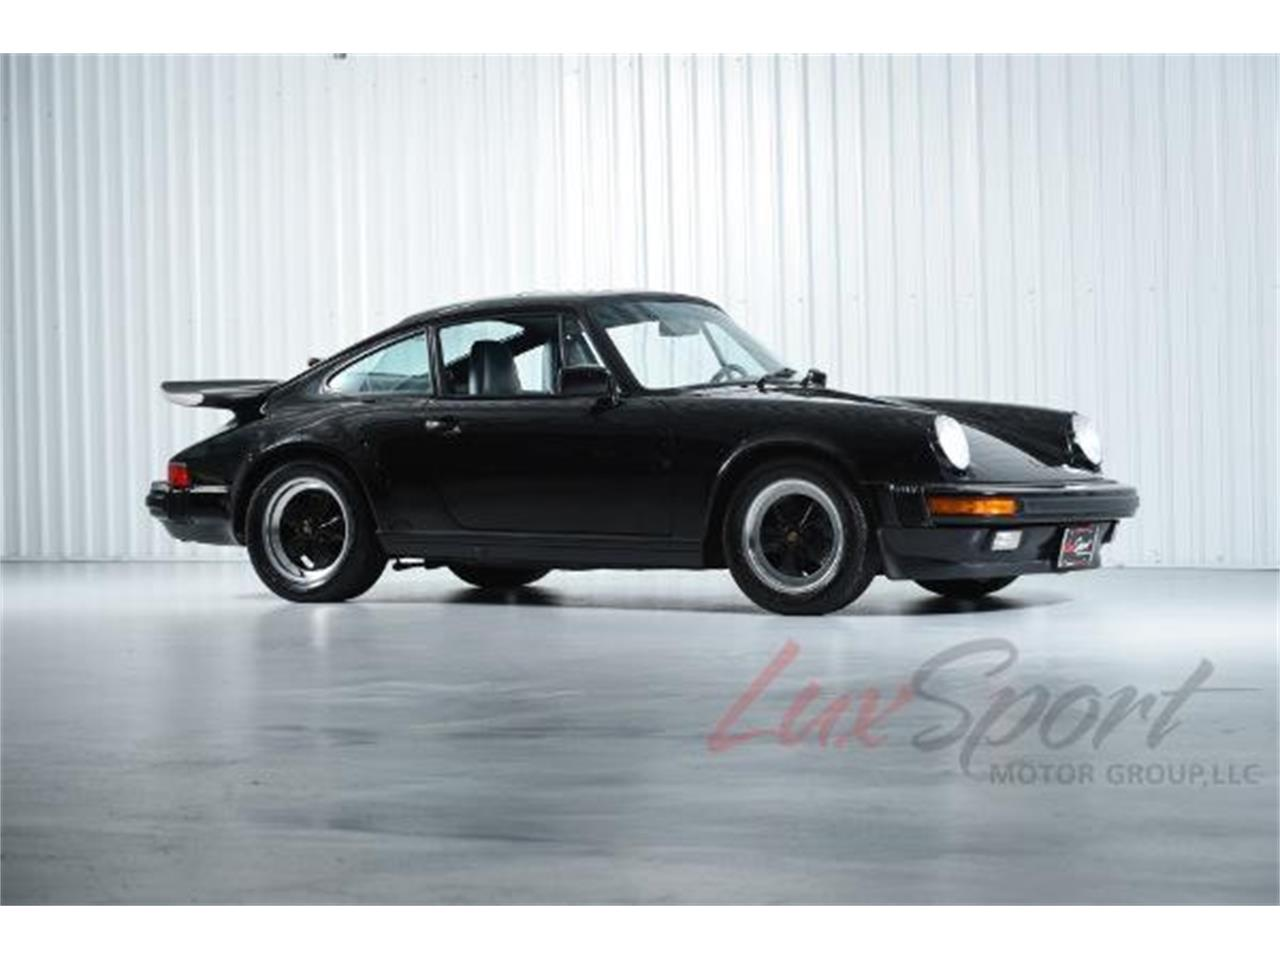 Large Picture of '87 Porsche 911 Carrera Auction Vehicle Offered by LuxSport Motor Group, LLC - JIKQ